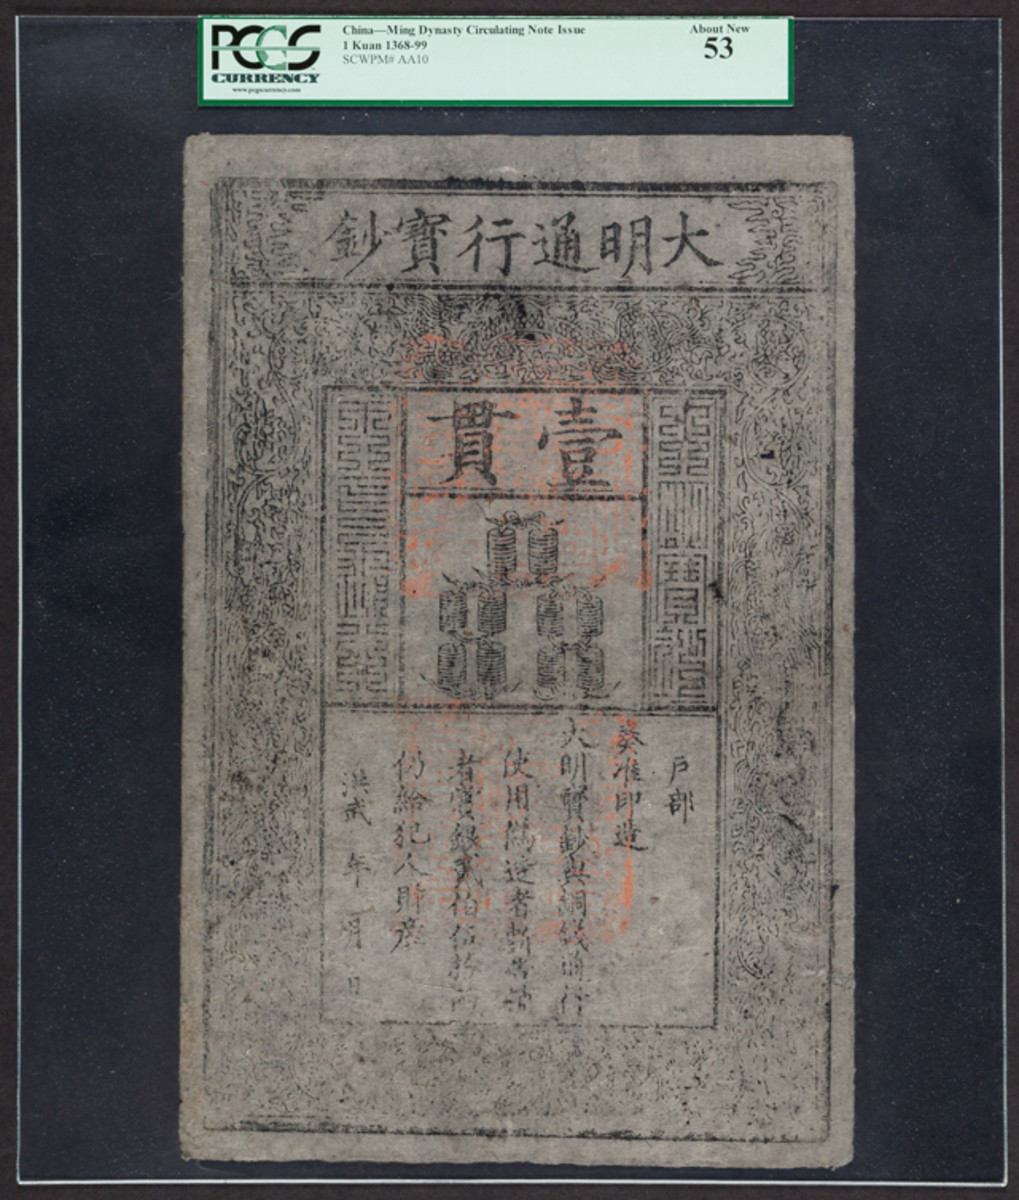 This highly sought-after, high grade Peoples Republic 10 yuan of 1953, P-870, raced away to a take $25,095 in PMG Extremely Fine 40.